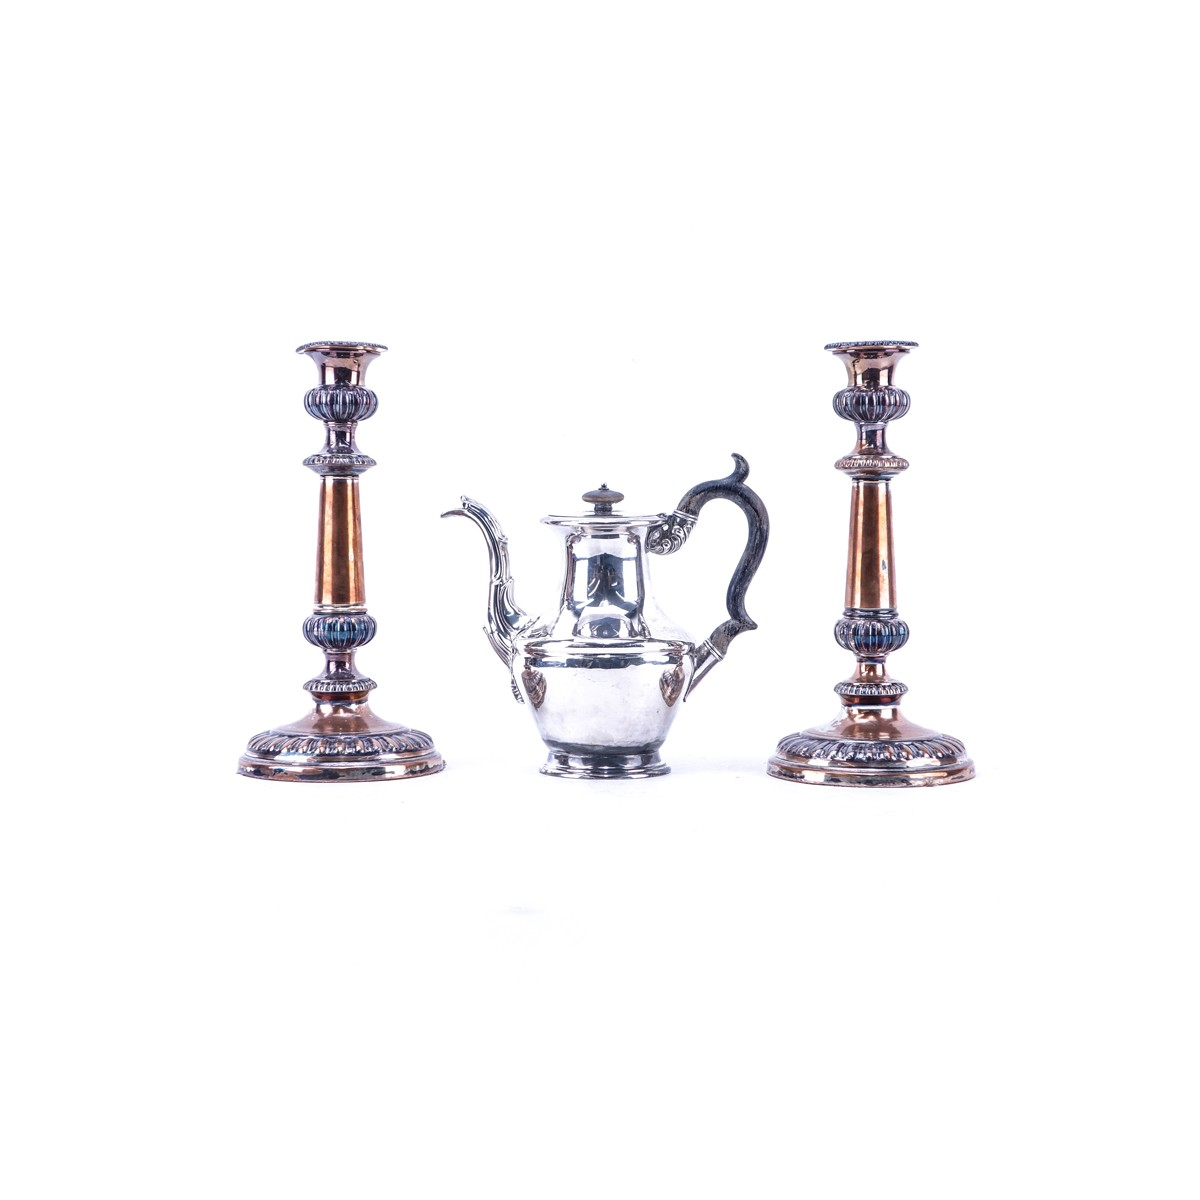 Grouping of Three (3): Pair of Silverplate Candlesticks, James Dixon & Sons Silverplate Teapot. Can